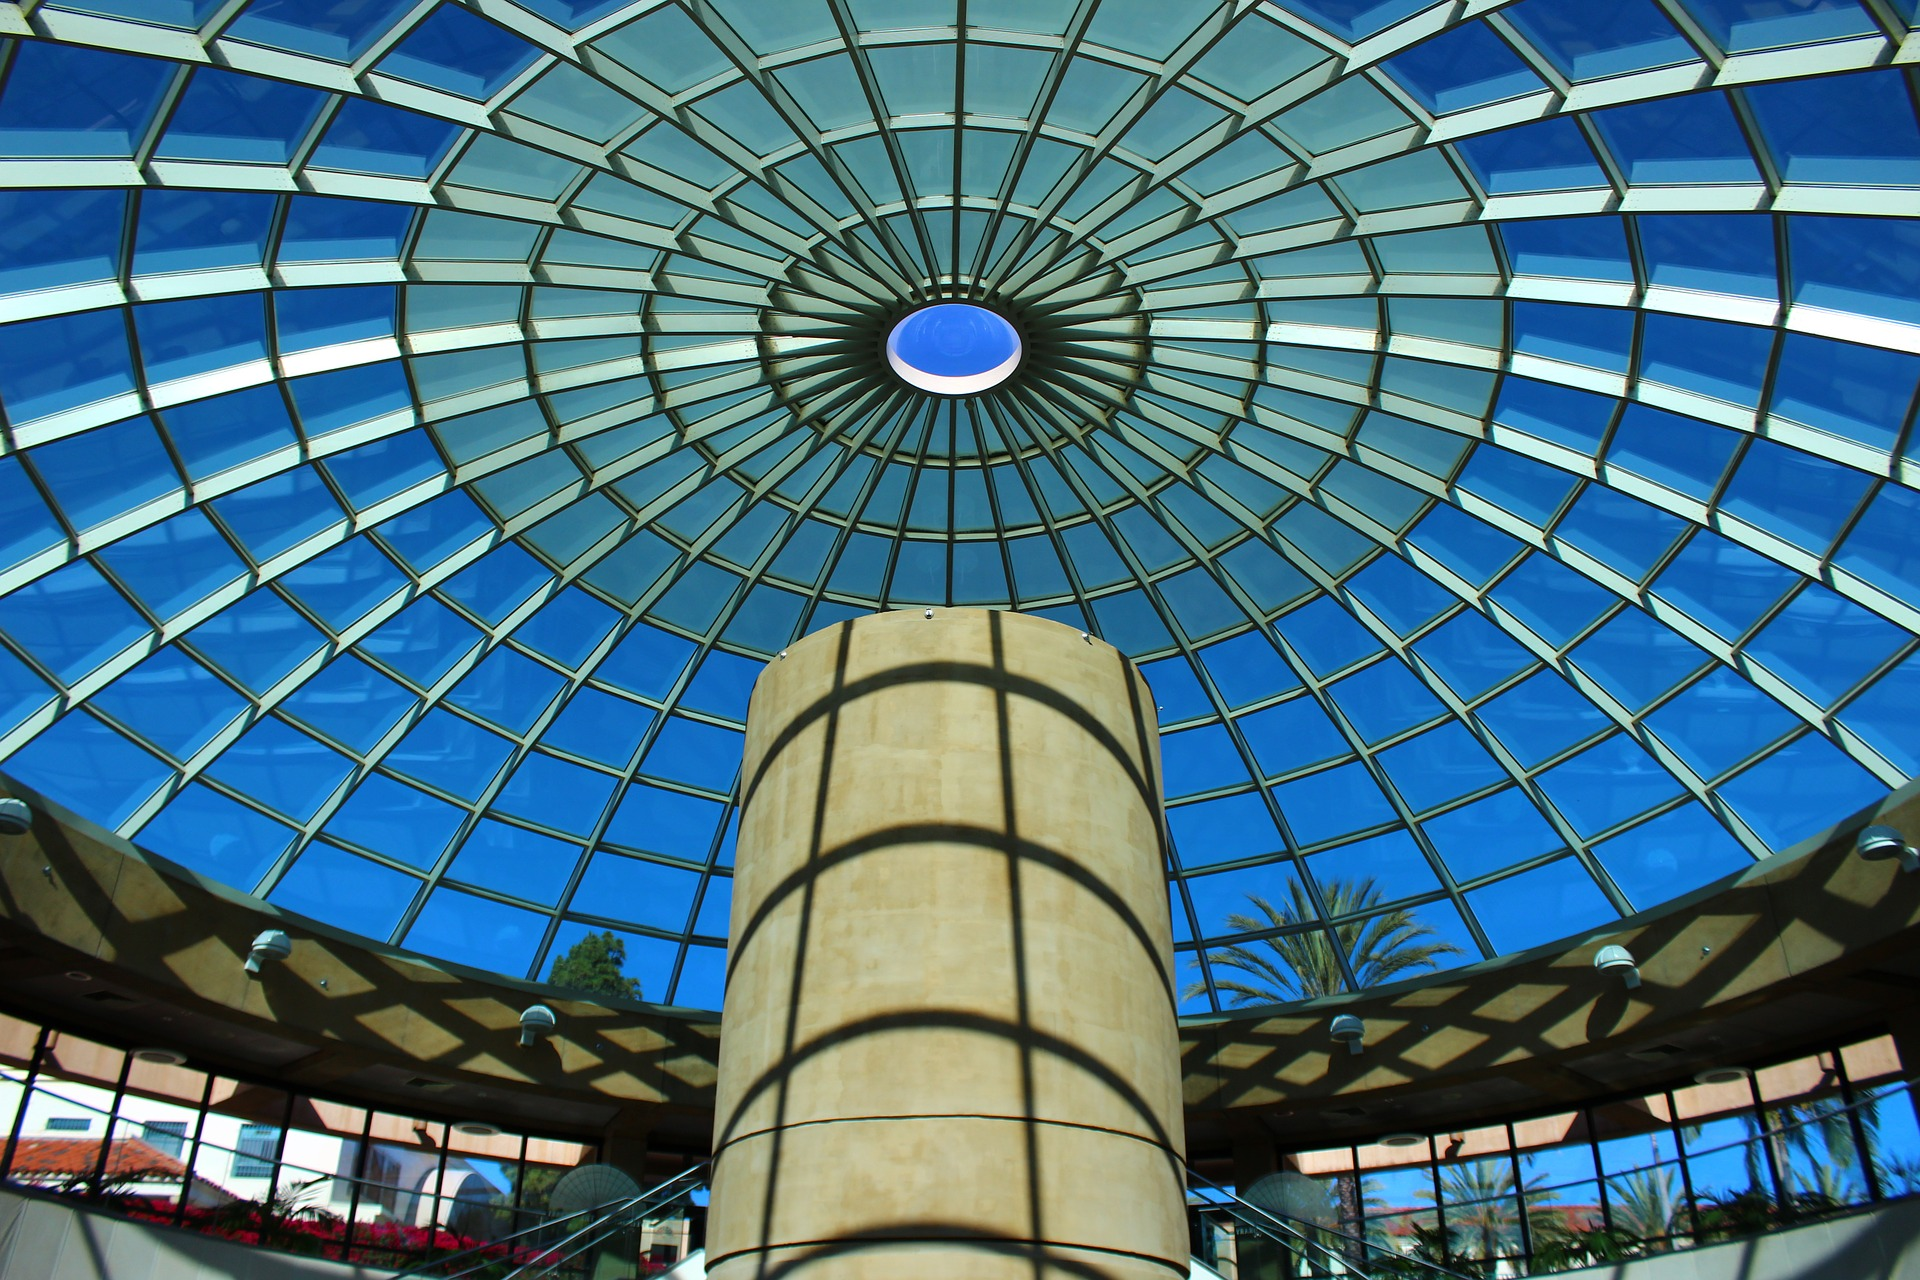 glass-ceiling-847122_1920